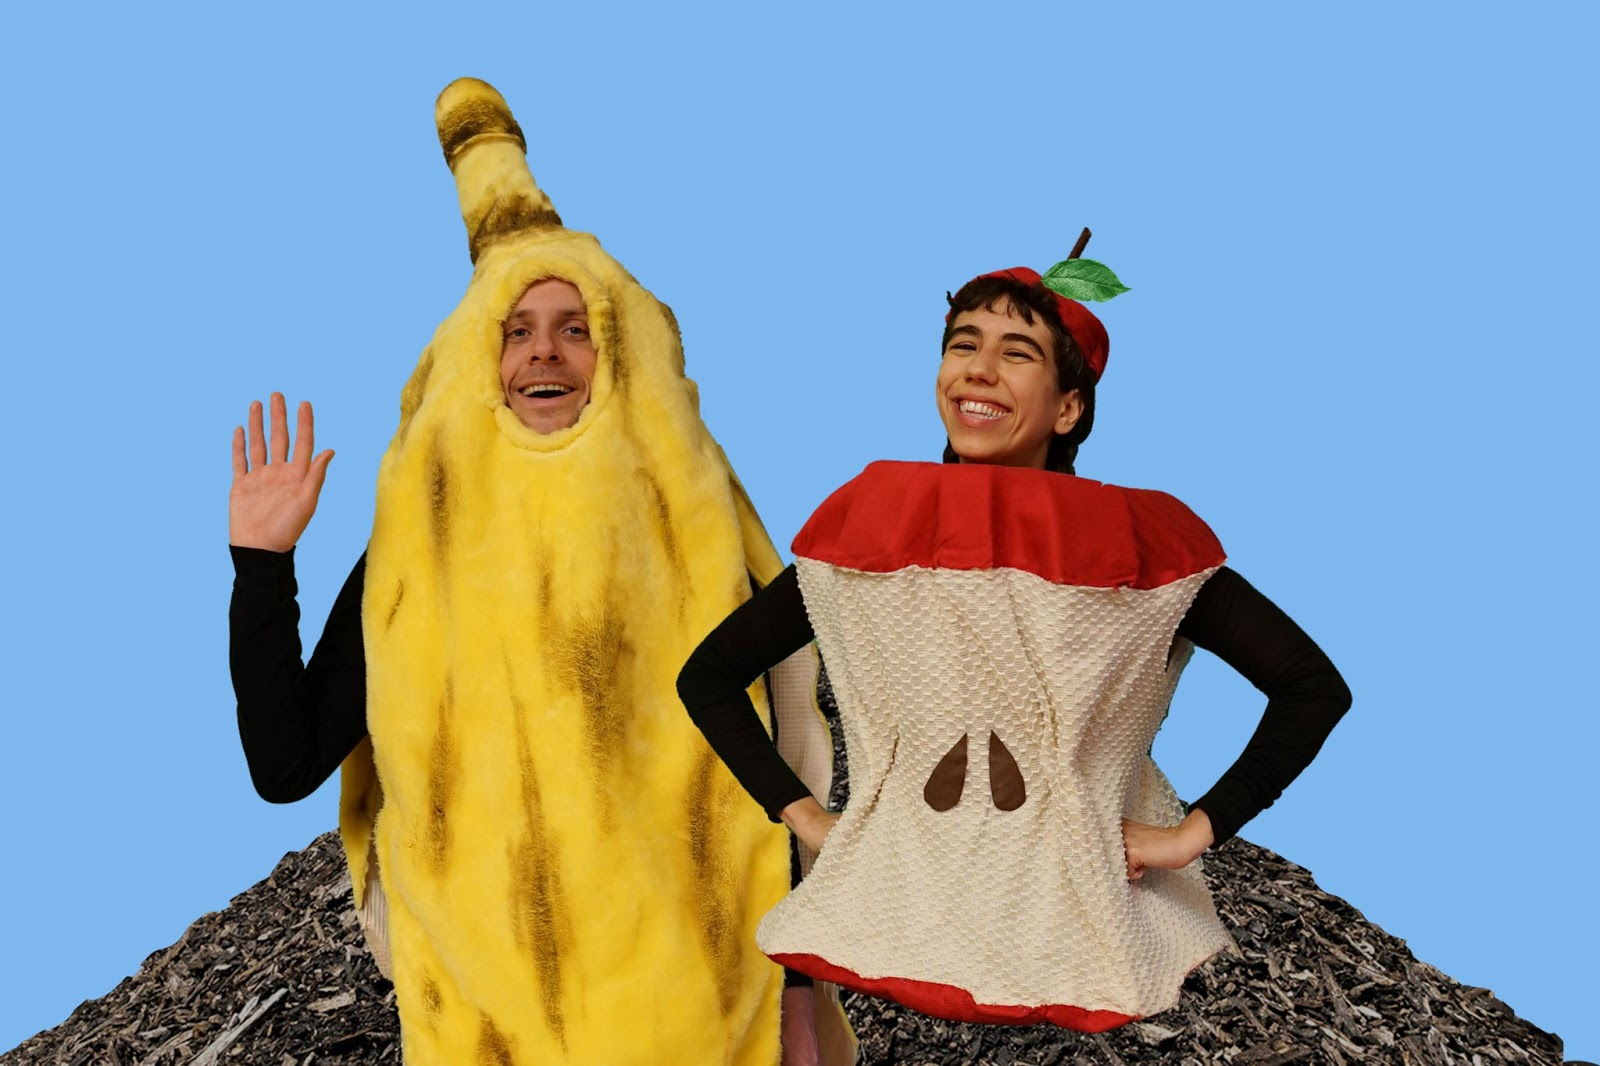 One person dressed as a banana and one person dressed as an apple core